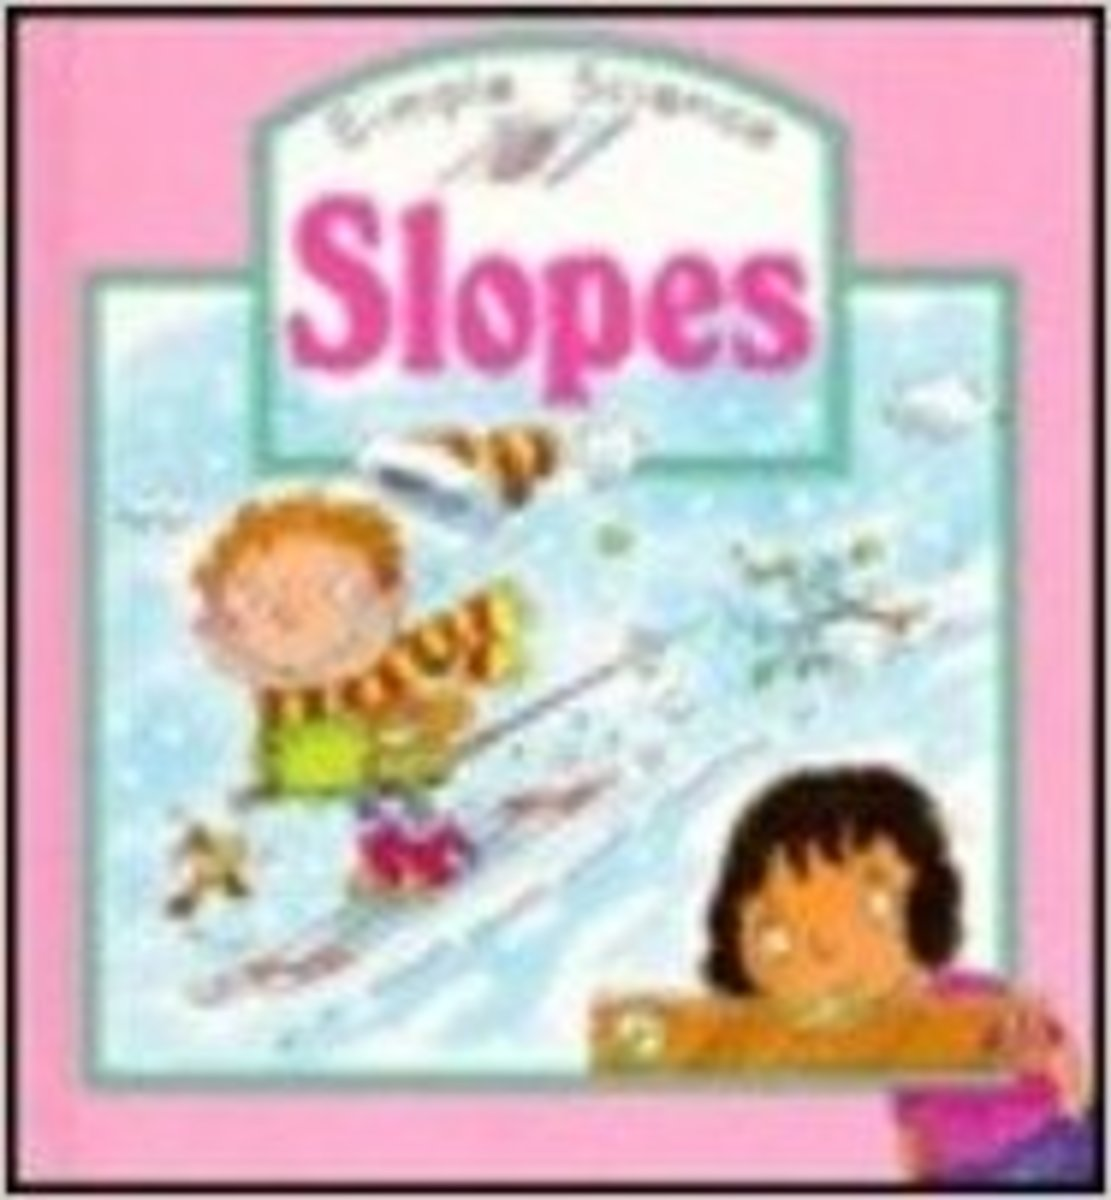 Slopes (Simple Science) by Caroline Rush